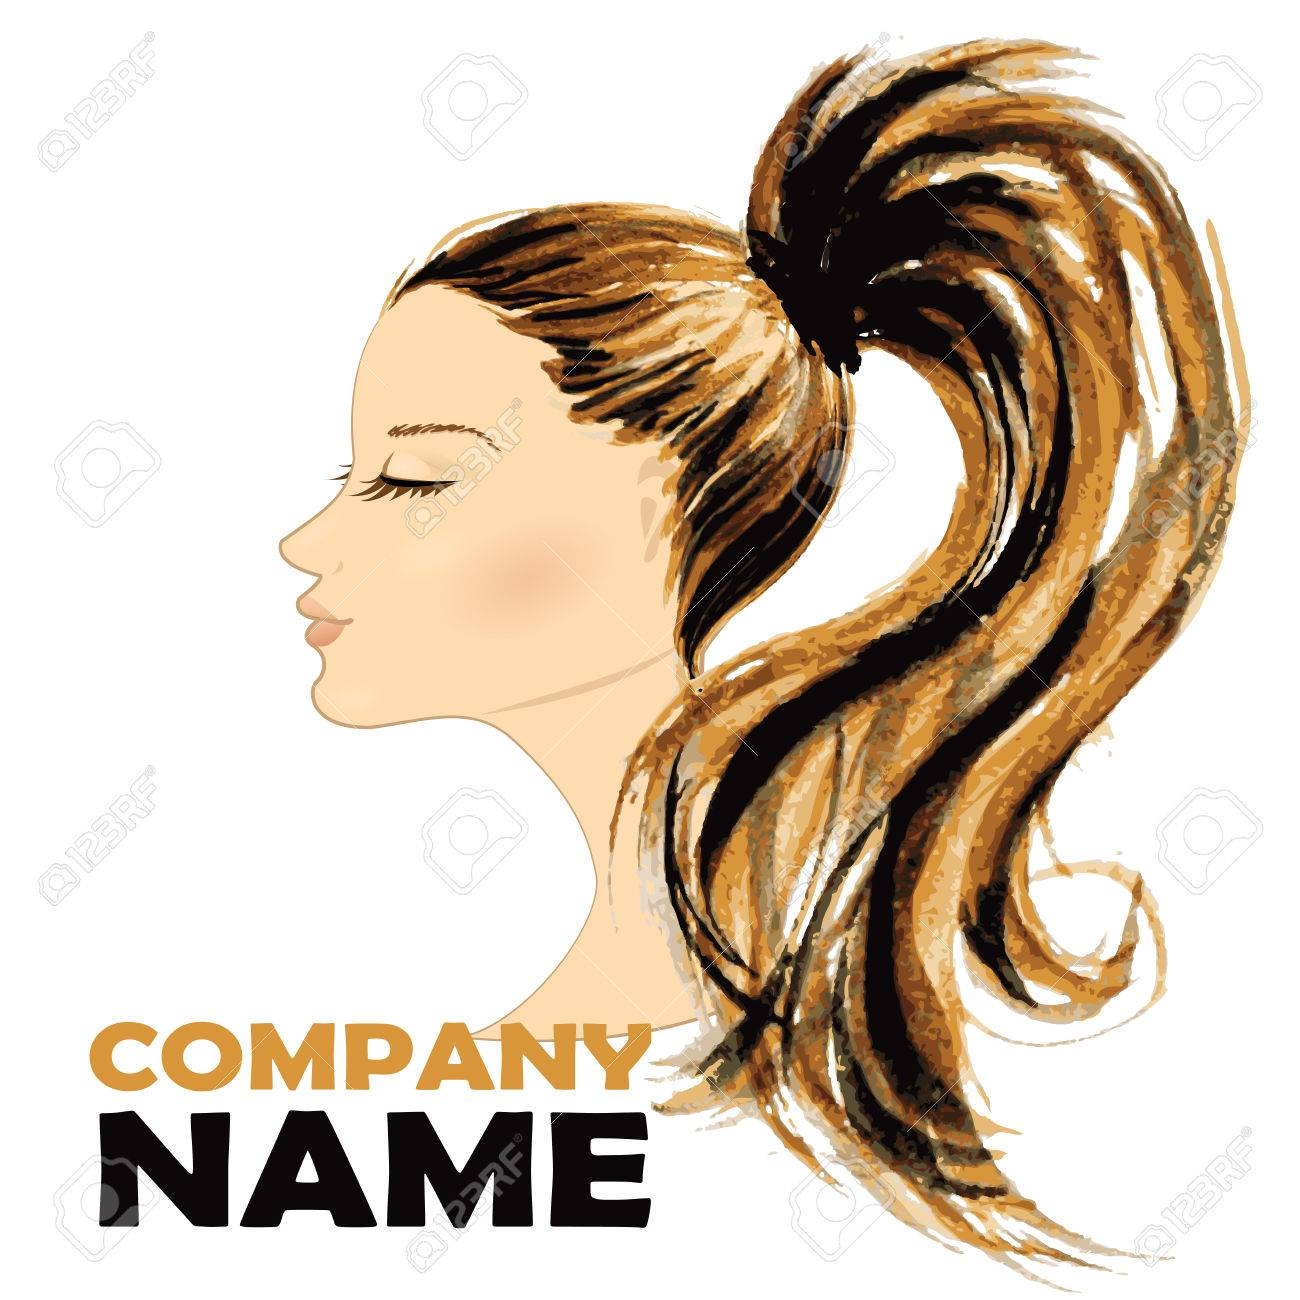 Fashion Woman With Long Hair Vector Illustration Stylish Design Royalty Free Cliparts Vectors And Stock Illustration Image 38810040